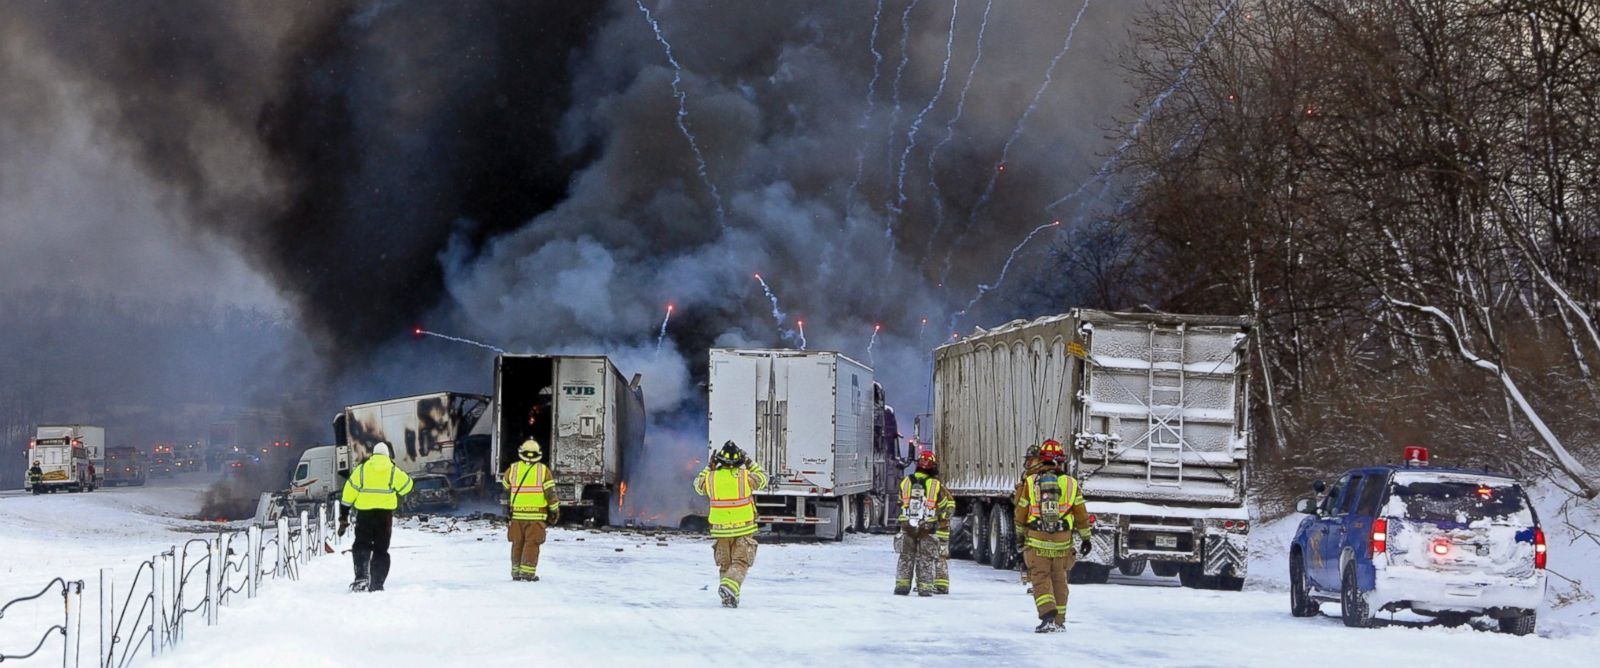 PHOTO: Emergency personnel watch as fireworks ignite at the scene of a fiery crash that closed both sides of Interstate 90, on Jan. 9, 2015, between mile markers 88 and 92 in eastern Kalamazoo County, near Galesburg, Mich.